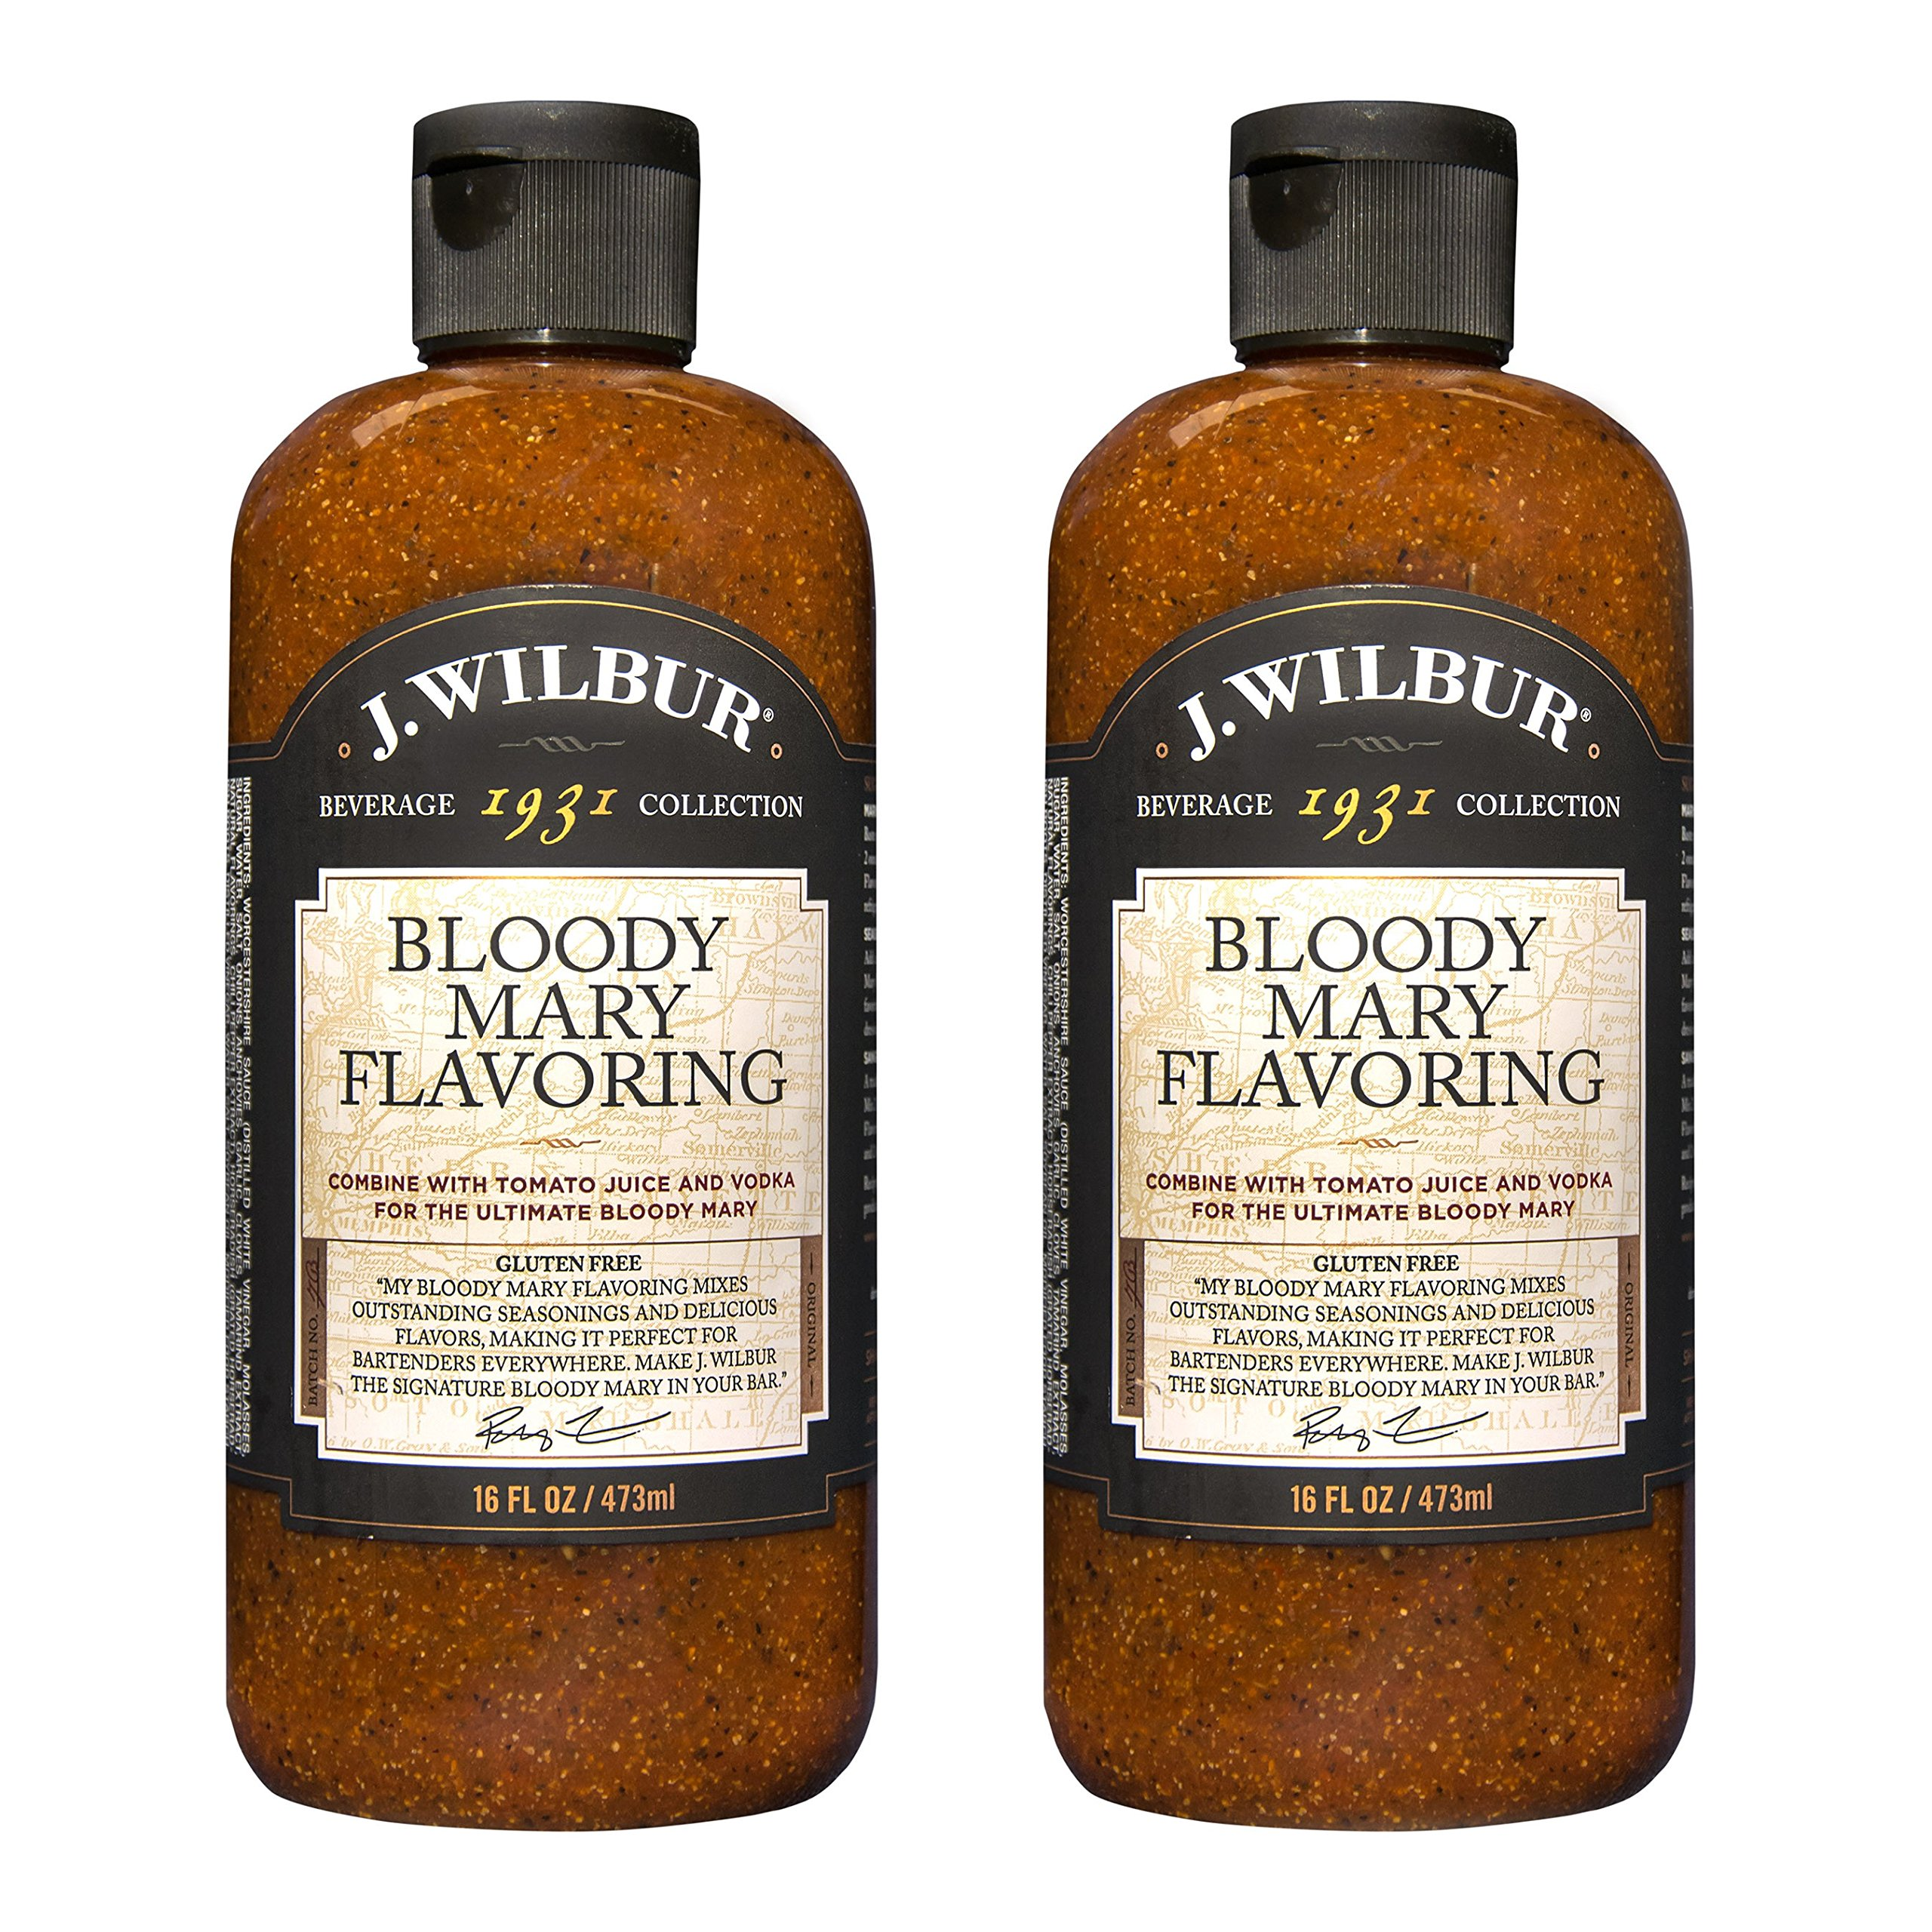 J. Wilbur Bloody Mary Mix 2 Pack (128 beverages) - All Natural, Gluten-Free, No MSG